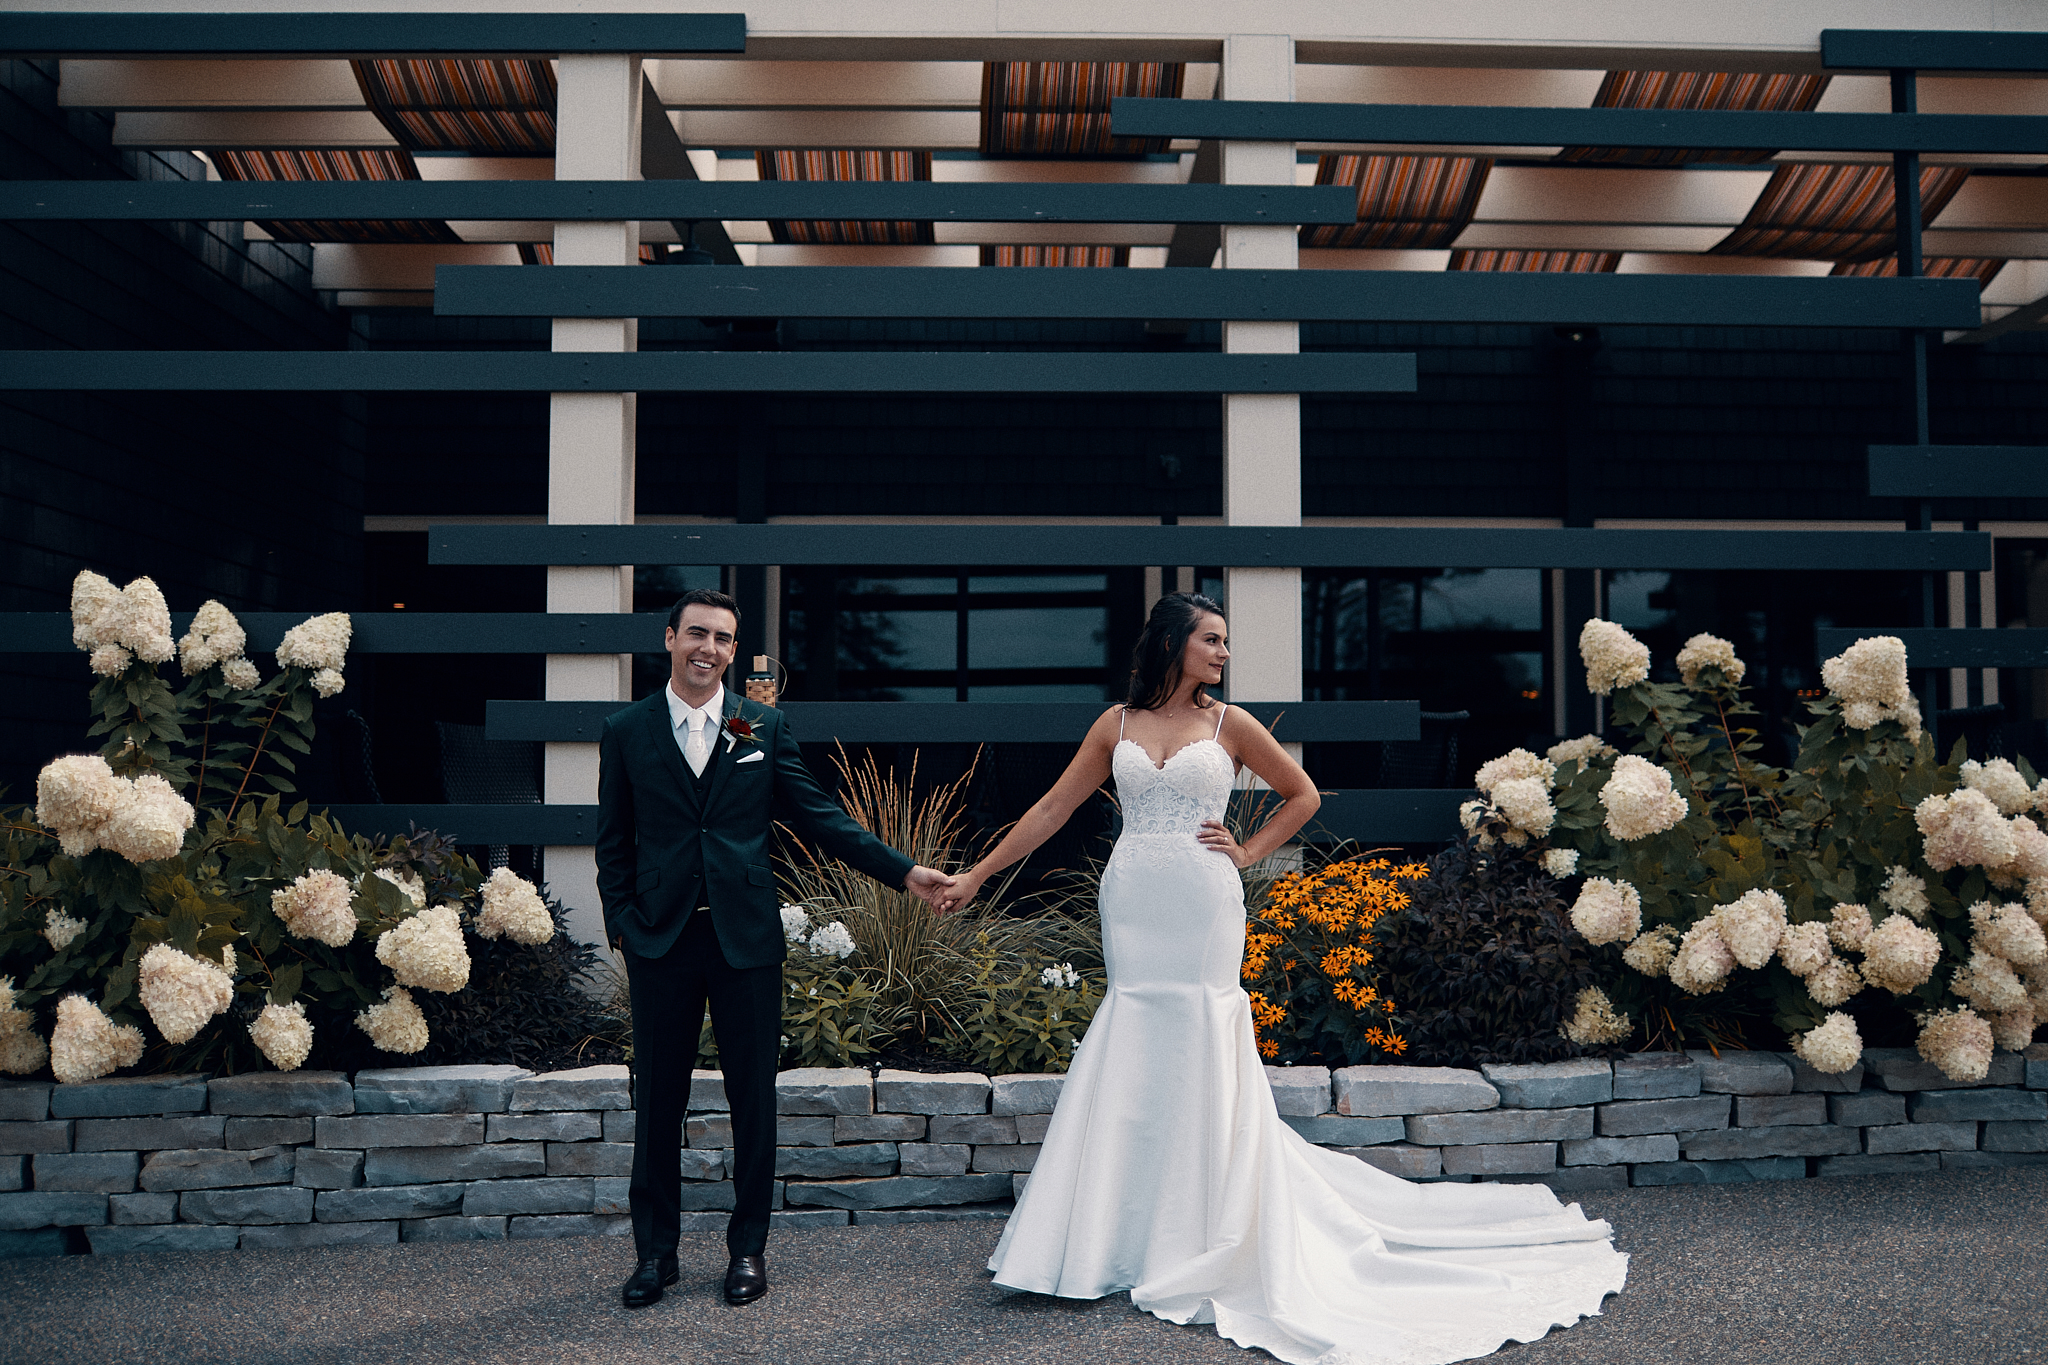 Best_Minneapolis_Wedding_And_Engaement_Photographer_In_Minnesota_High_End_Brand_Something_Candid_006.JPG